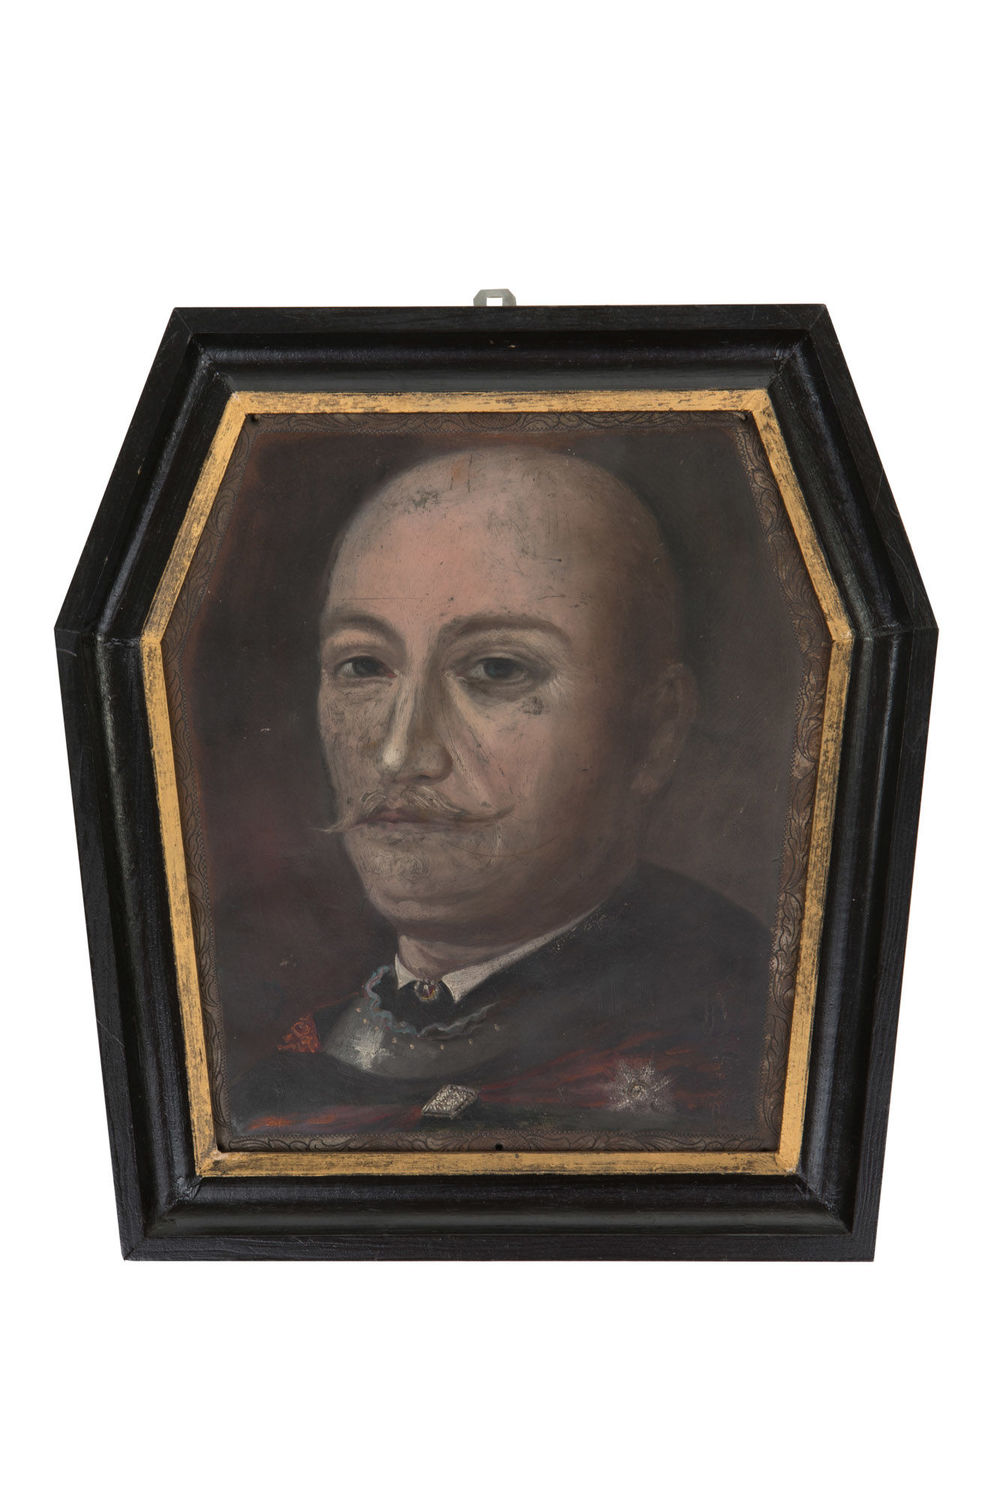 Coffin portrait of Jan Zygmunt Staniszewski